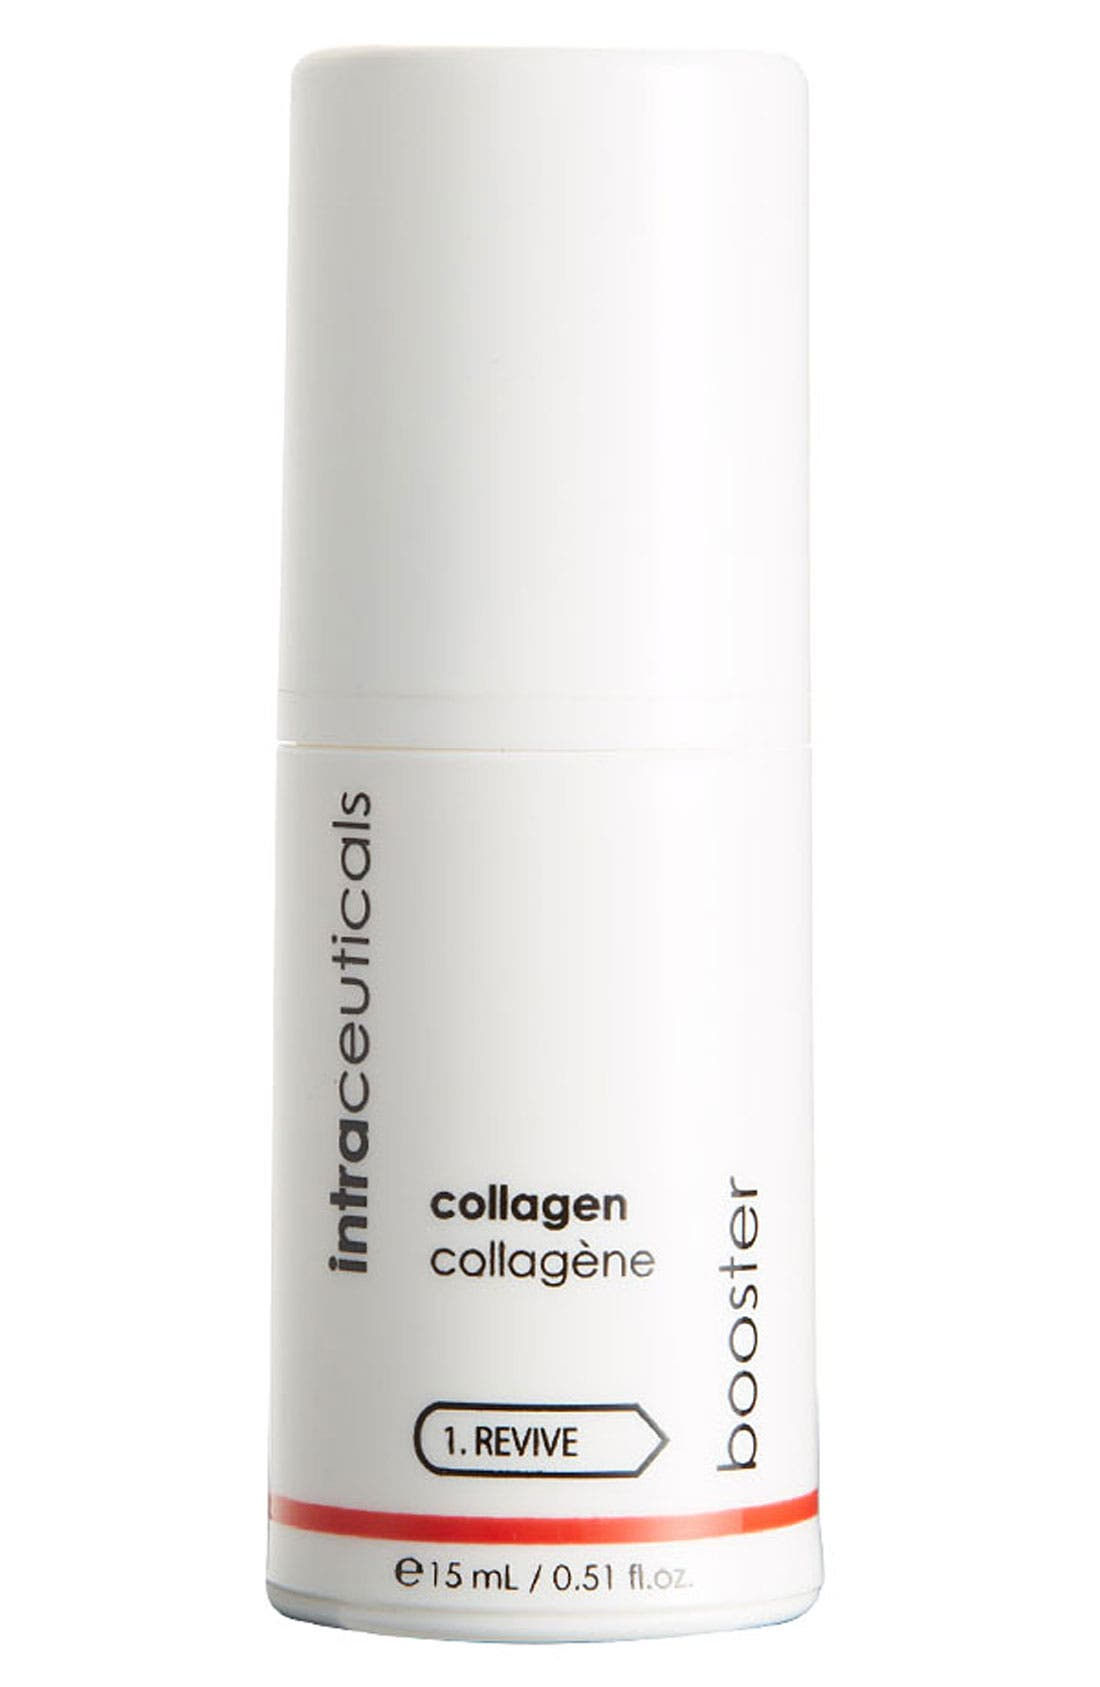 'Booster' Collagen Serum,                             Main thumbnail 1, color,                             000